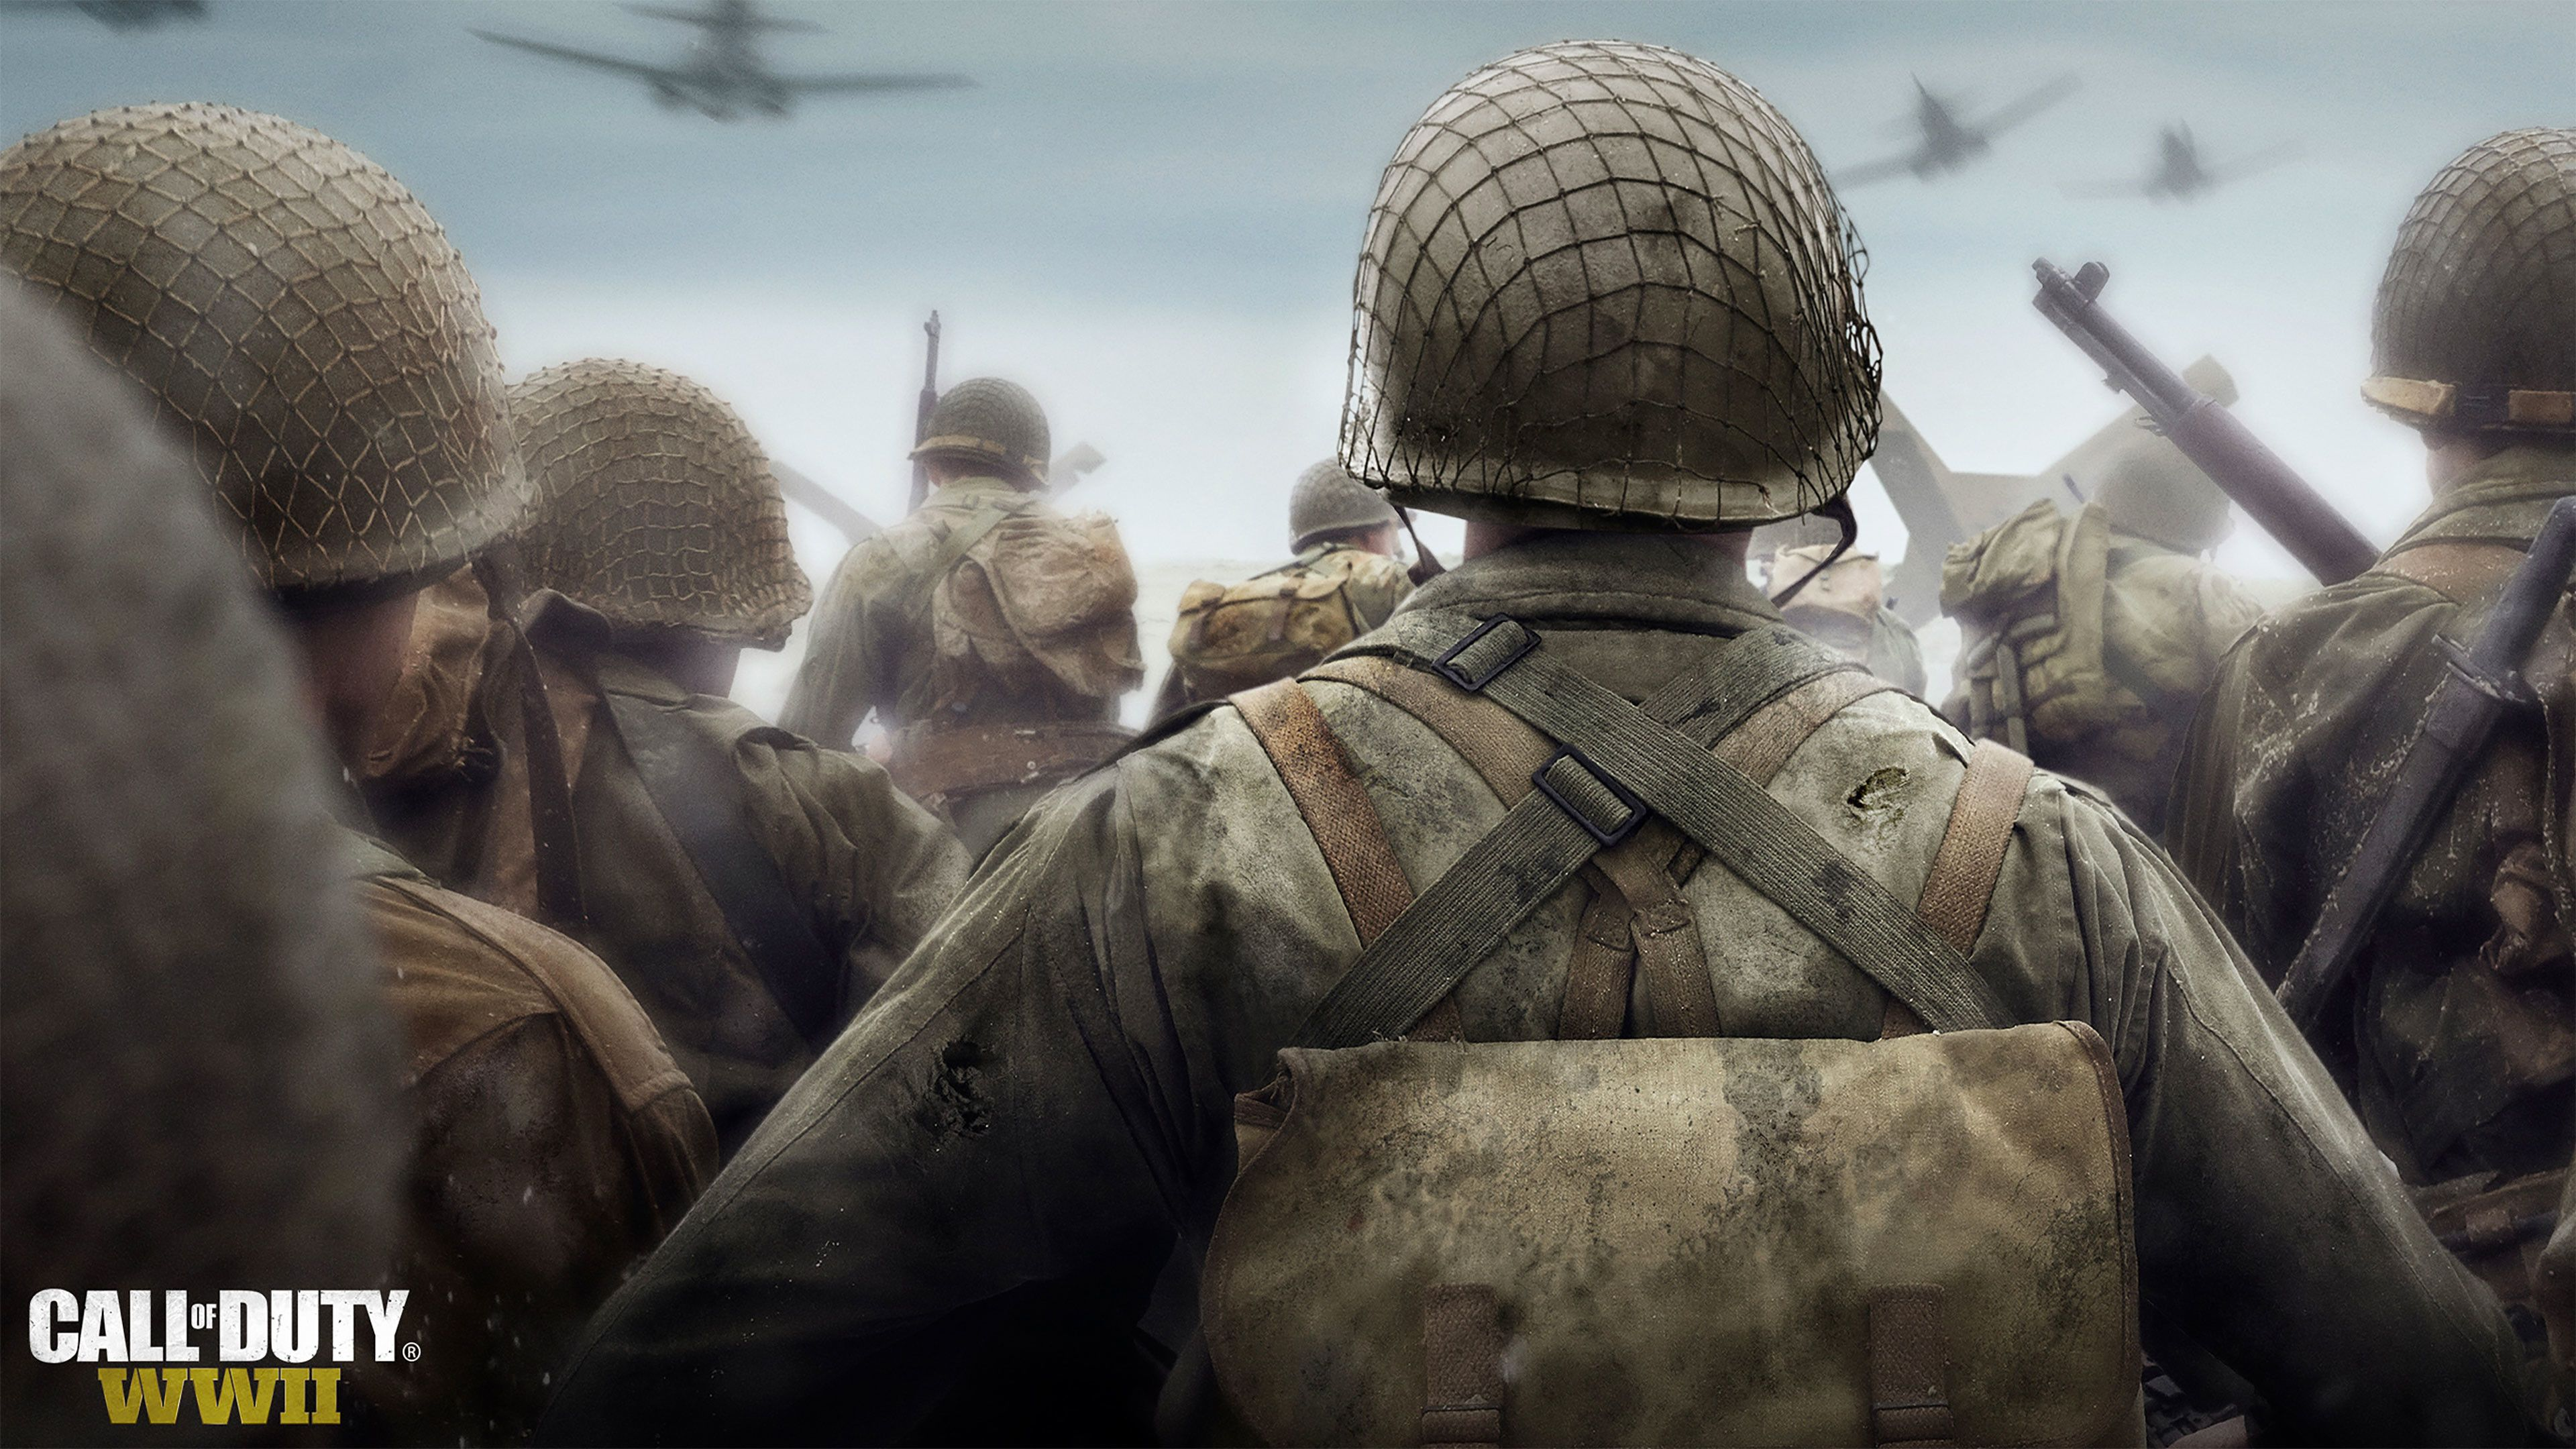 Call of Duty WW2 Wallpapers - Top Free Call of Duty WW2 Backgrounds - WallpaperAccess